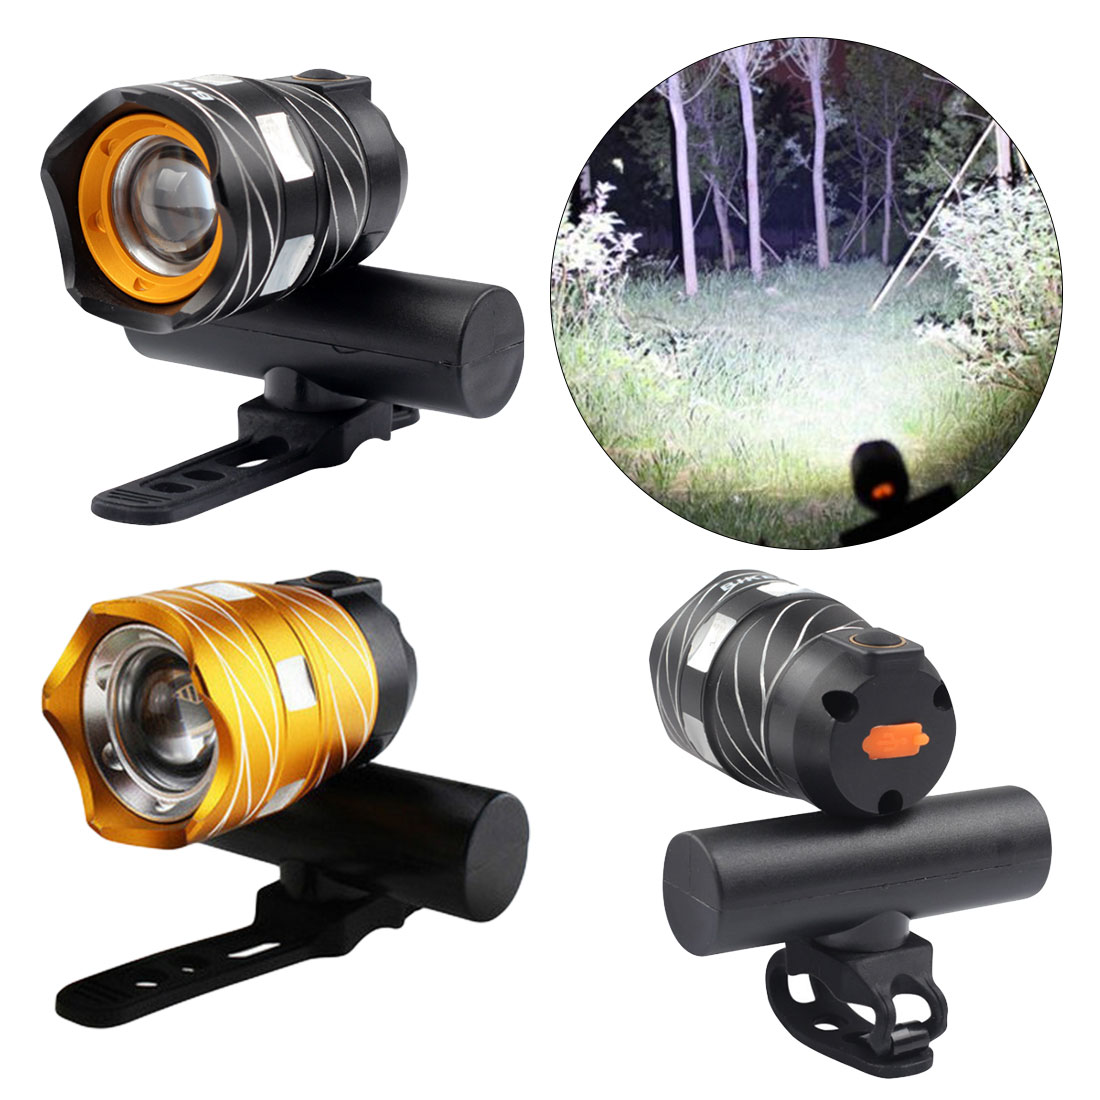 T6 400 Meters LED Bicycle Light Bike Front Lamp Outdoor Torch Headlight USB Rechargeable Built-in Battery 15000LM